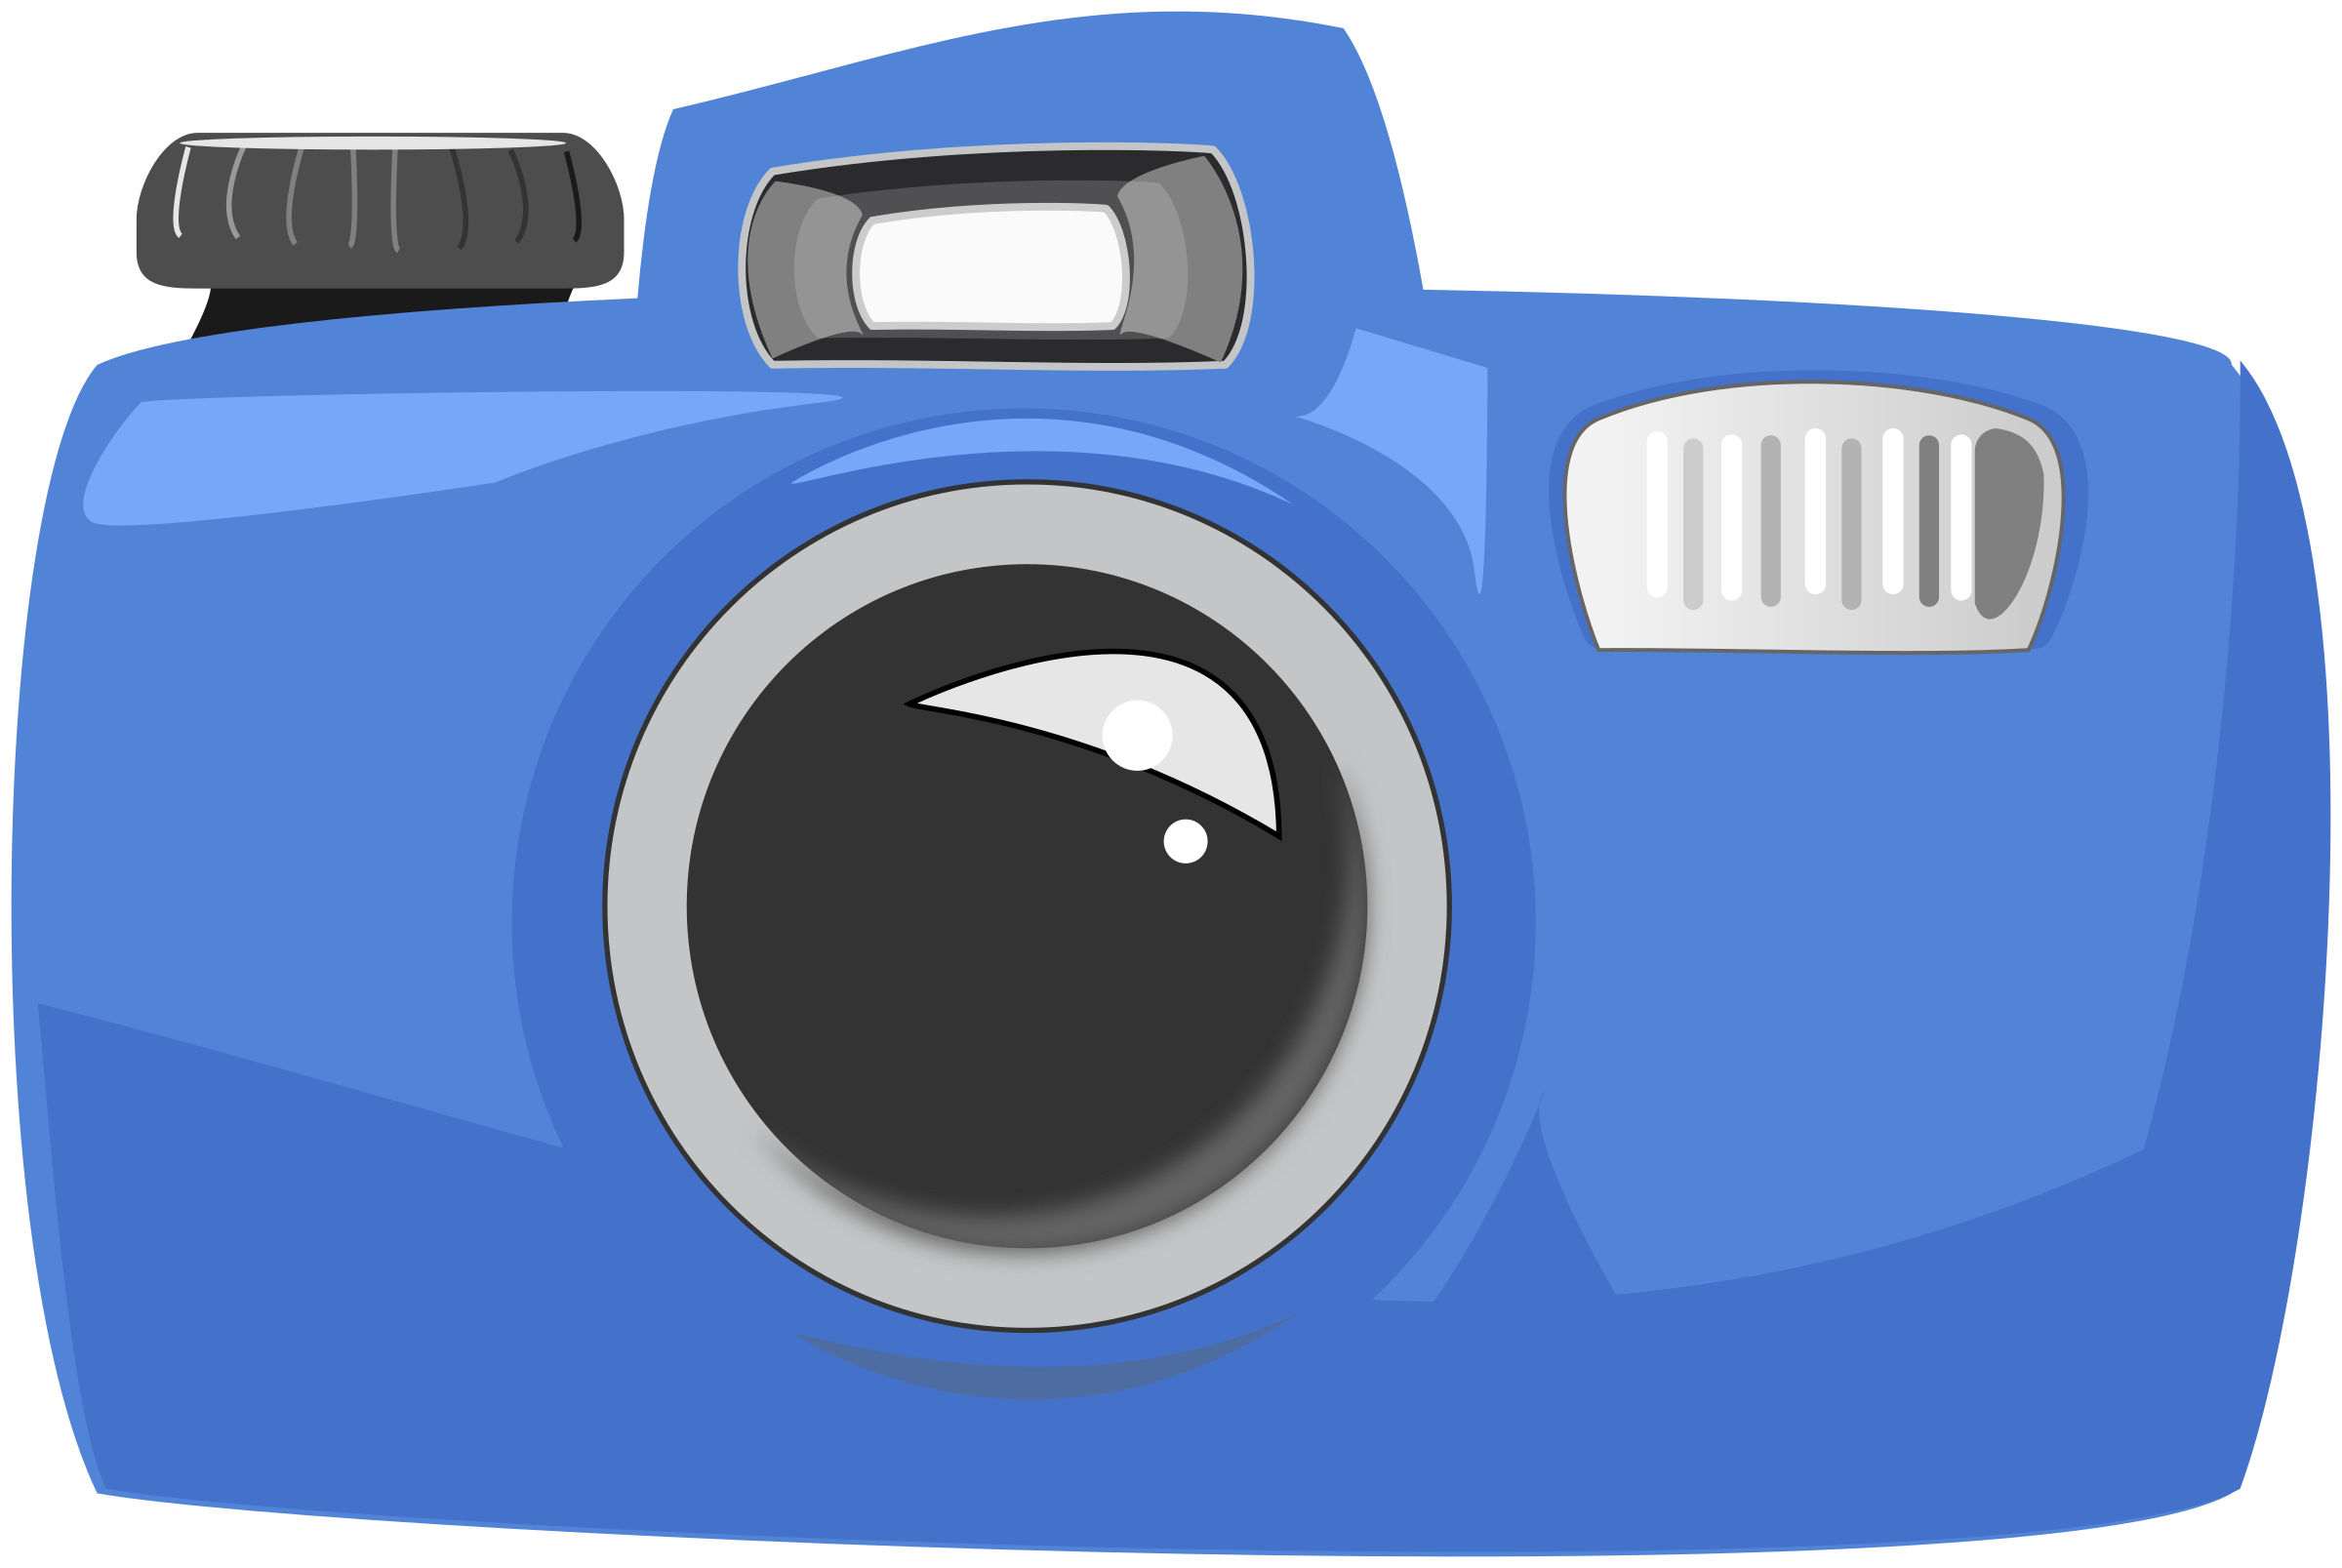 Clipart - Cartoon Camera